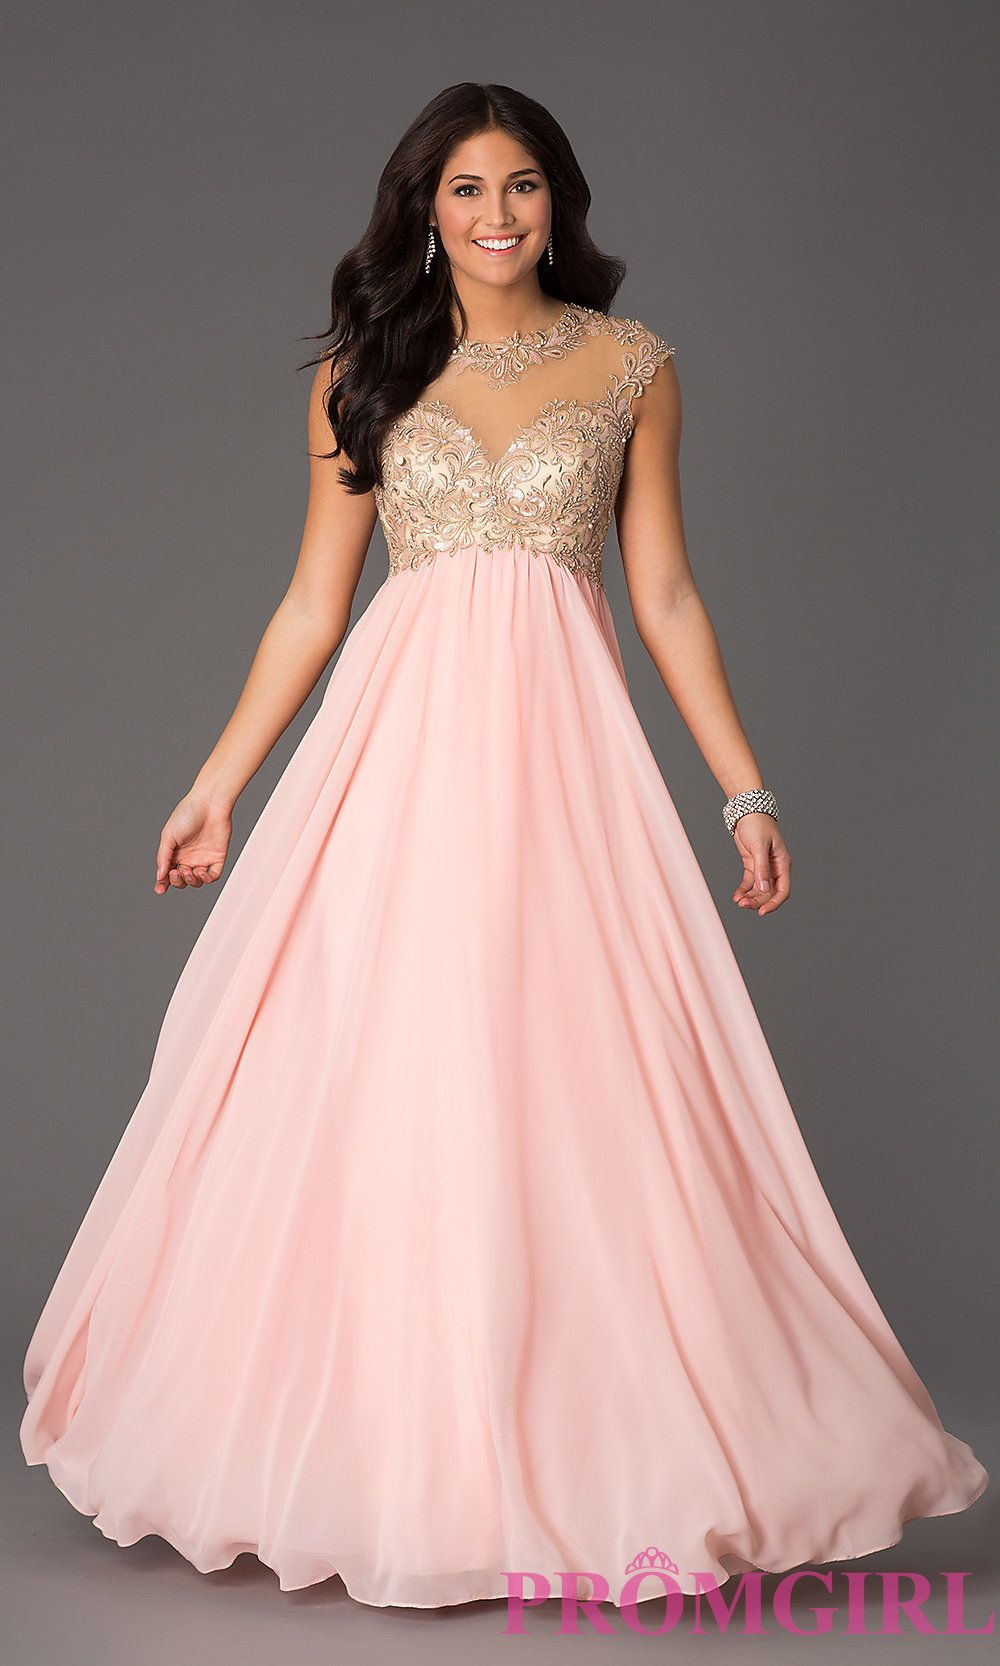 Prom Dresses, Plus Size Dresses, Prom Shoes: Floor Length Cap Sleeve ...